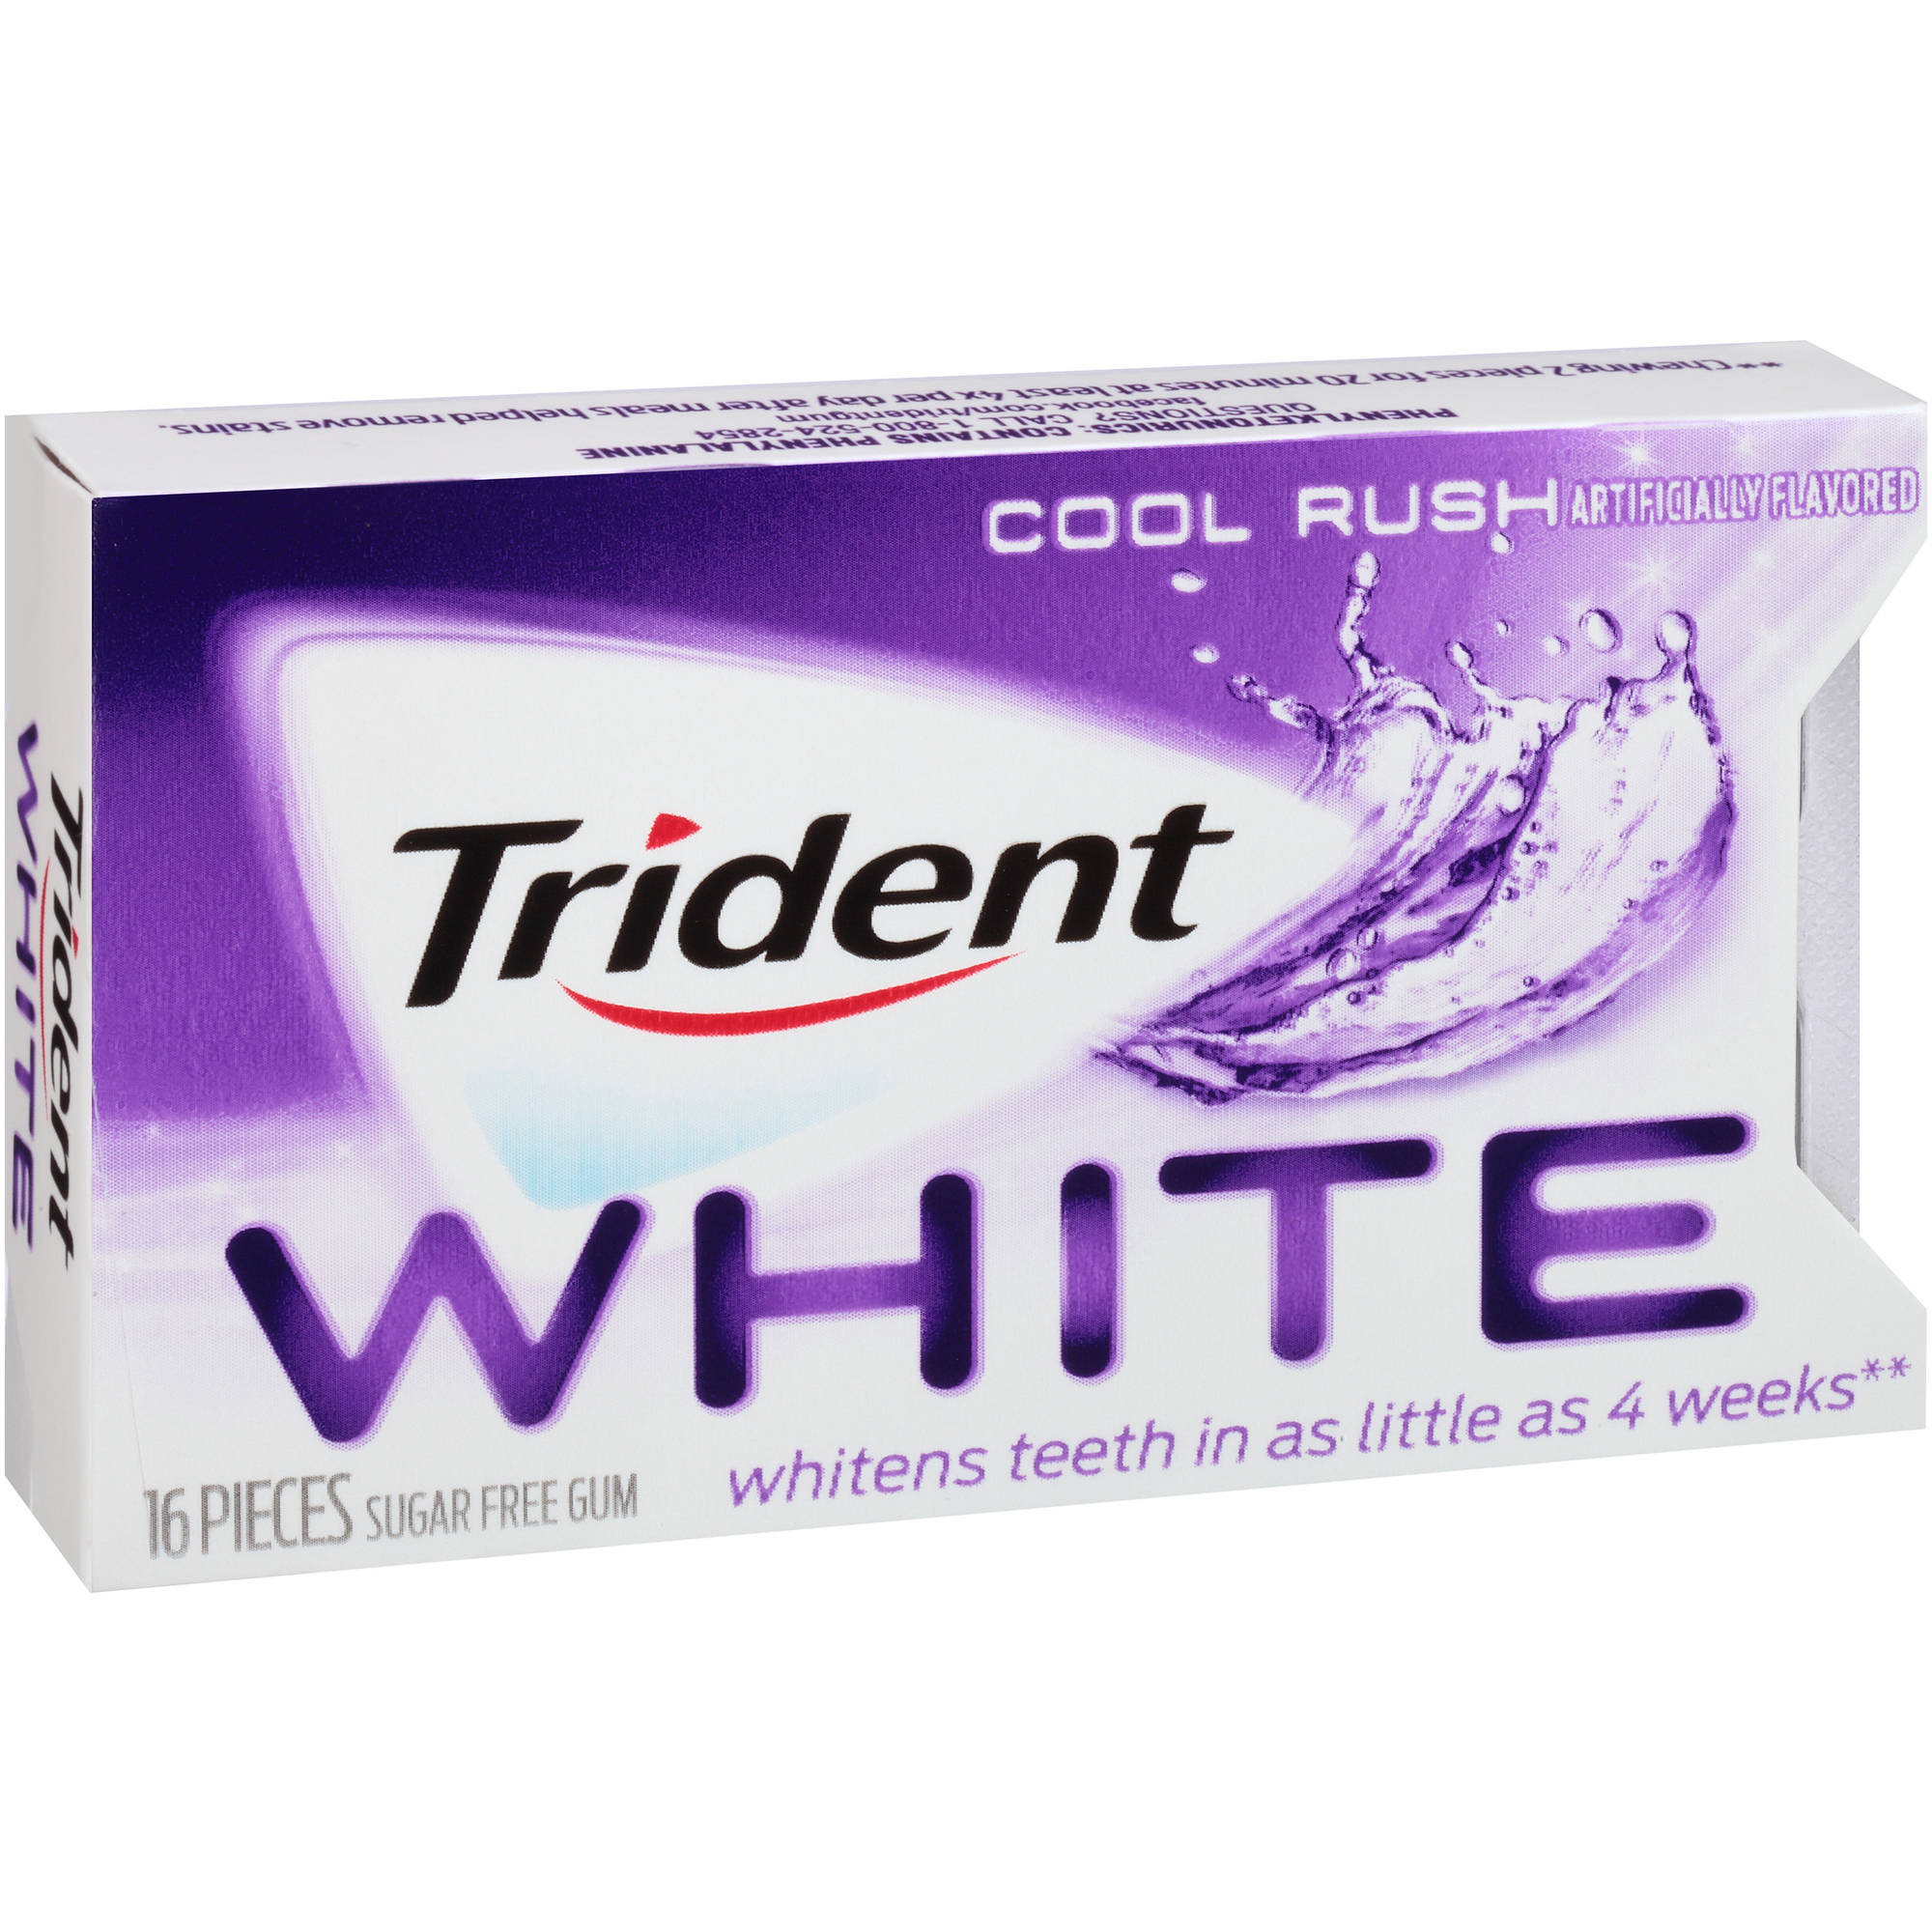 Trident White Cool Rush Sugar Free Gum, 16 pc